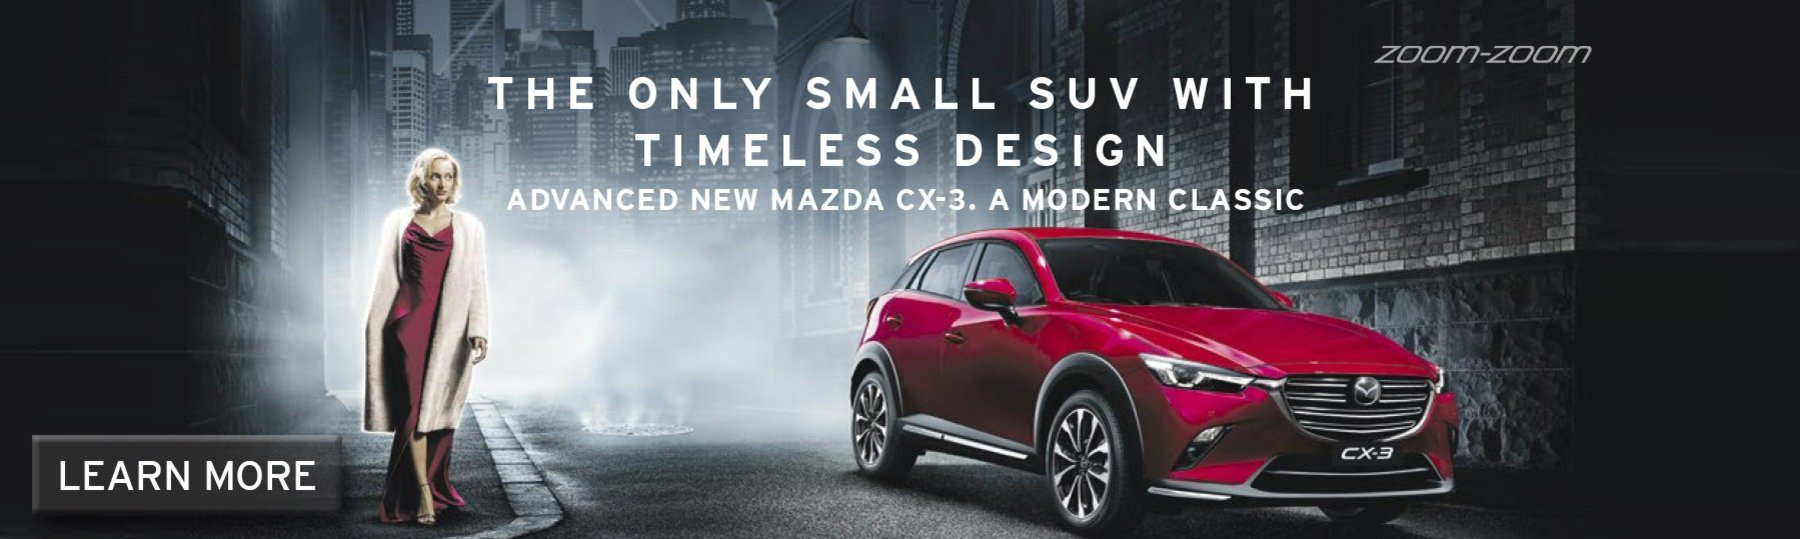 Berwick mazda advanced new cx-3